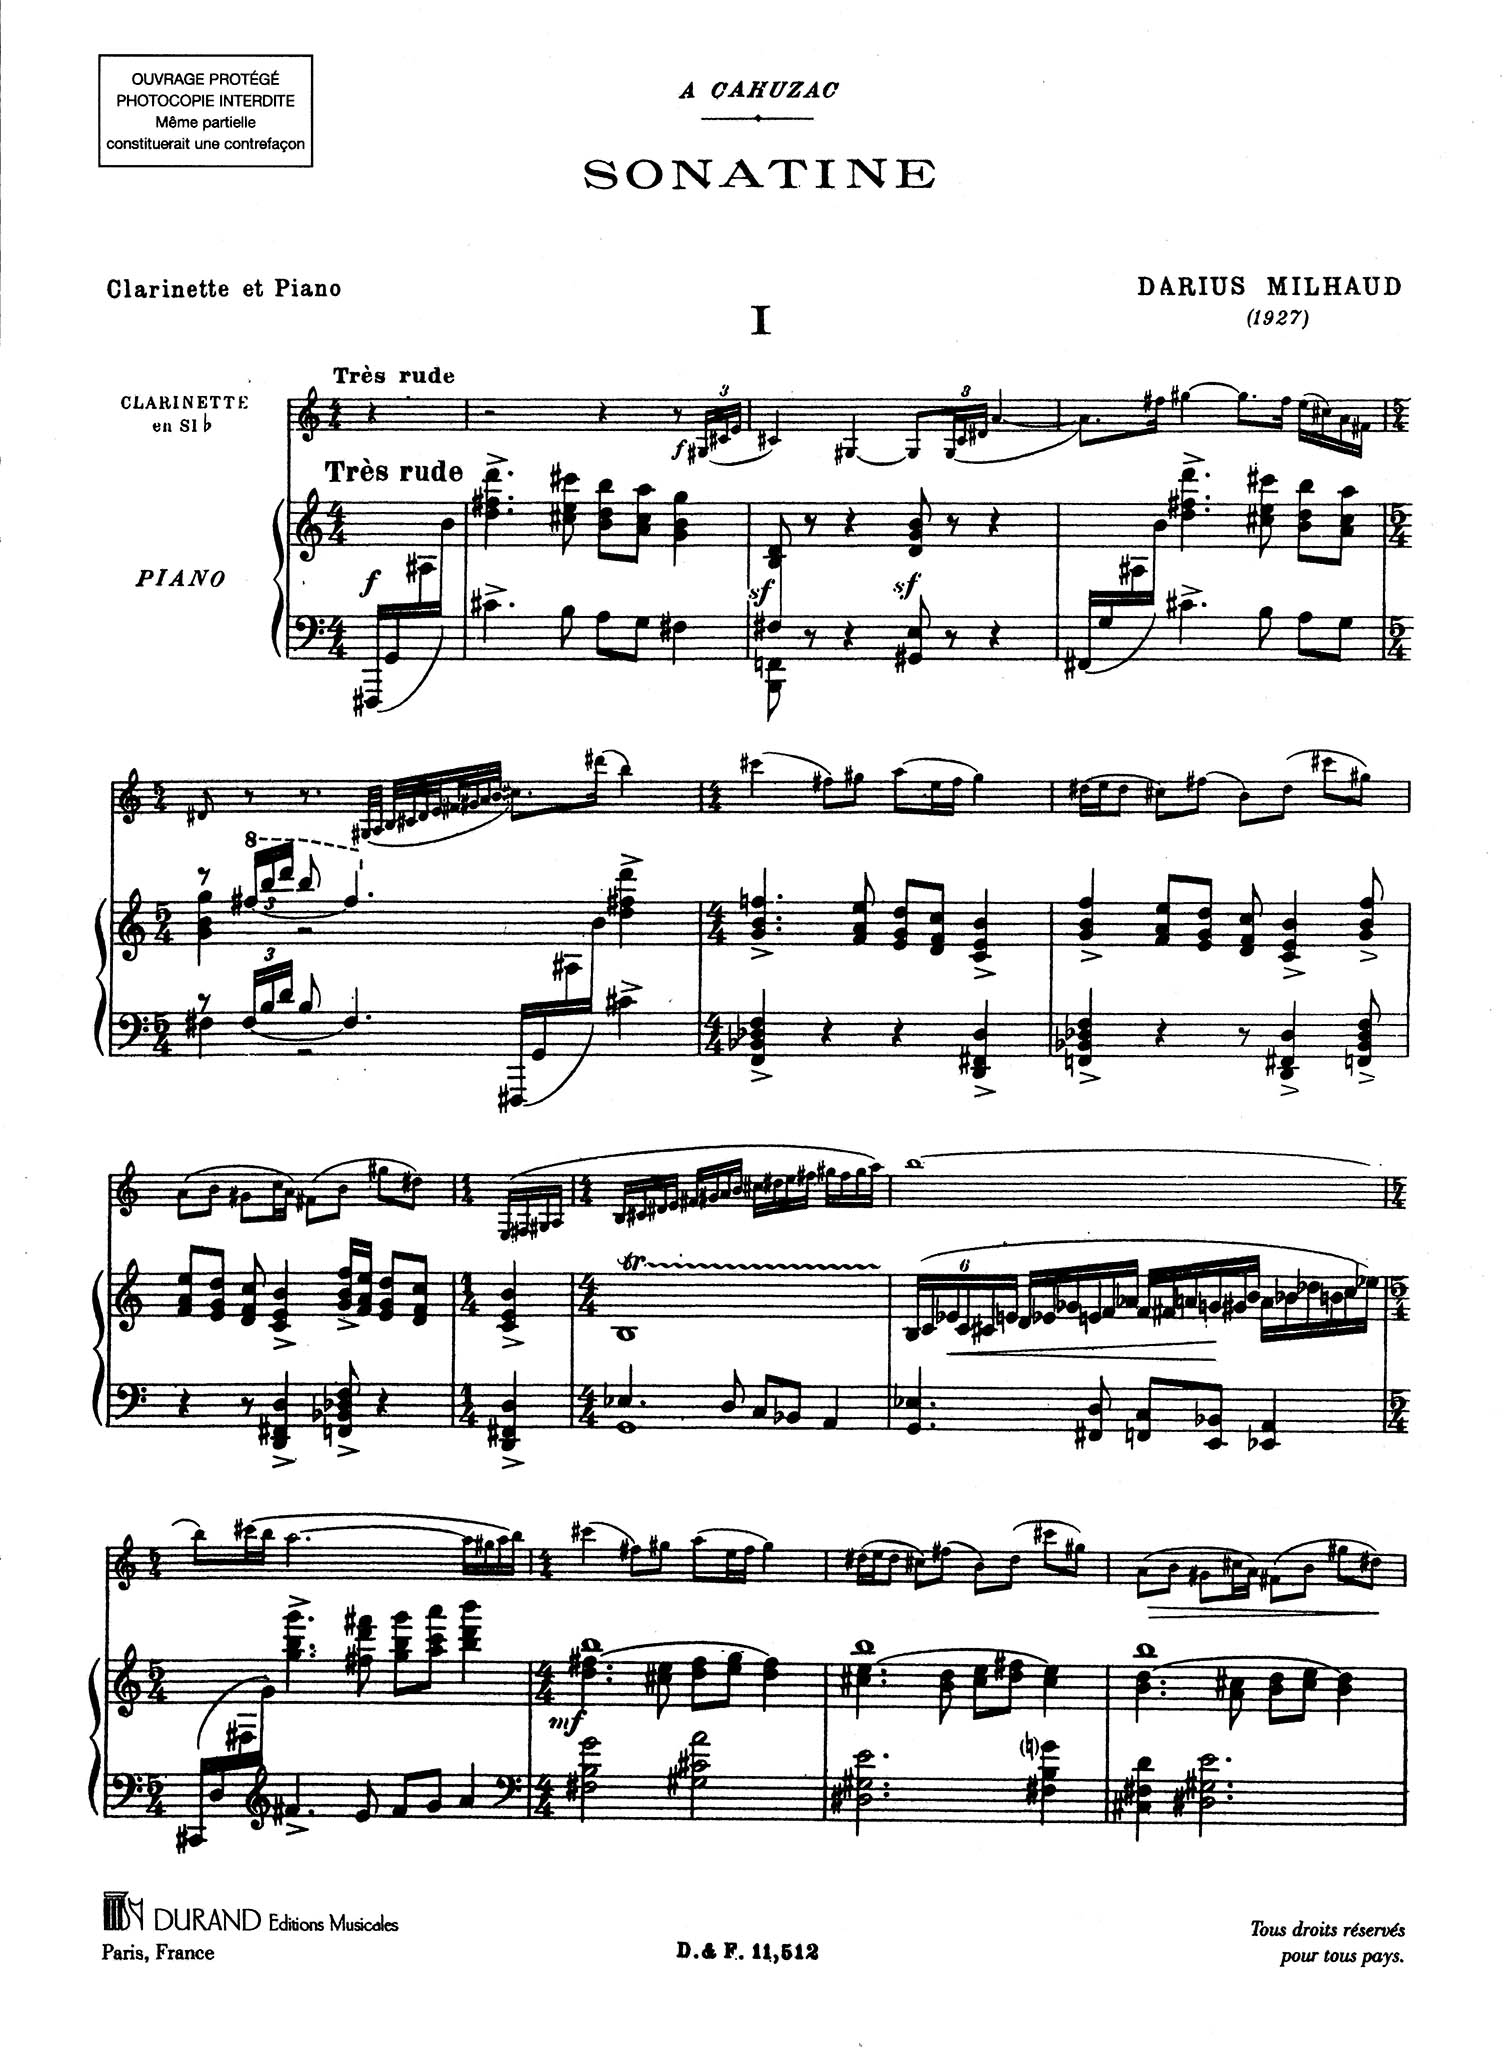 Sonatina, Op. 100 - Movement 1